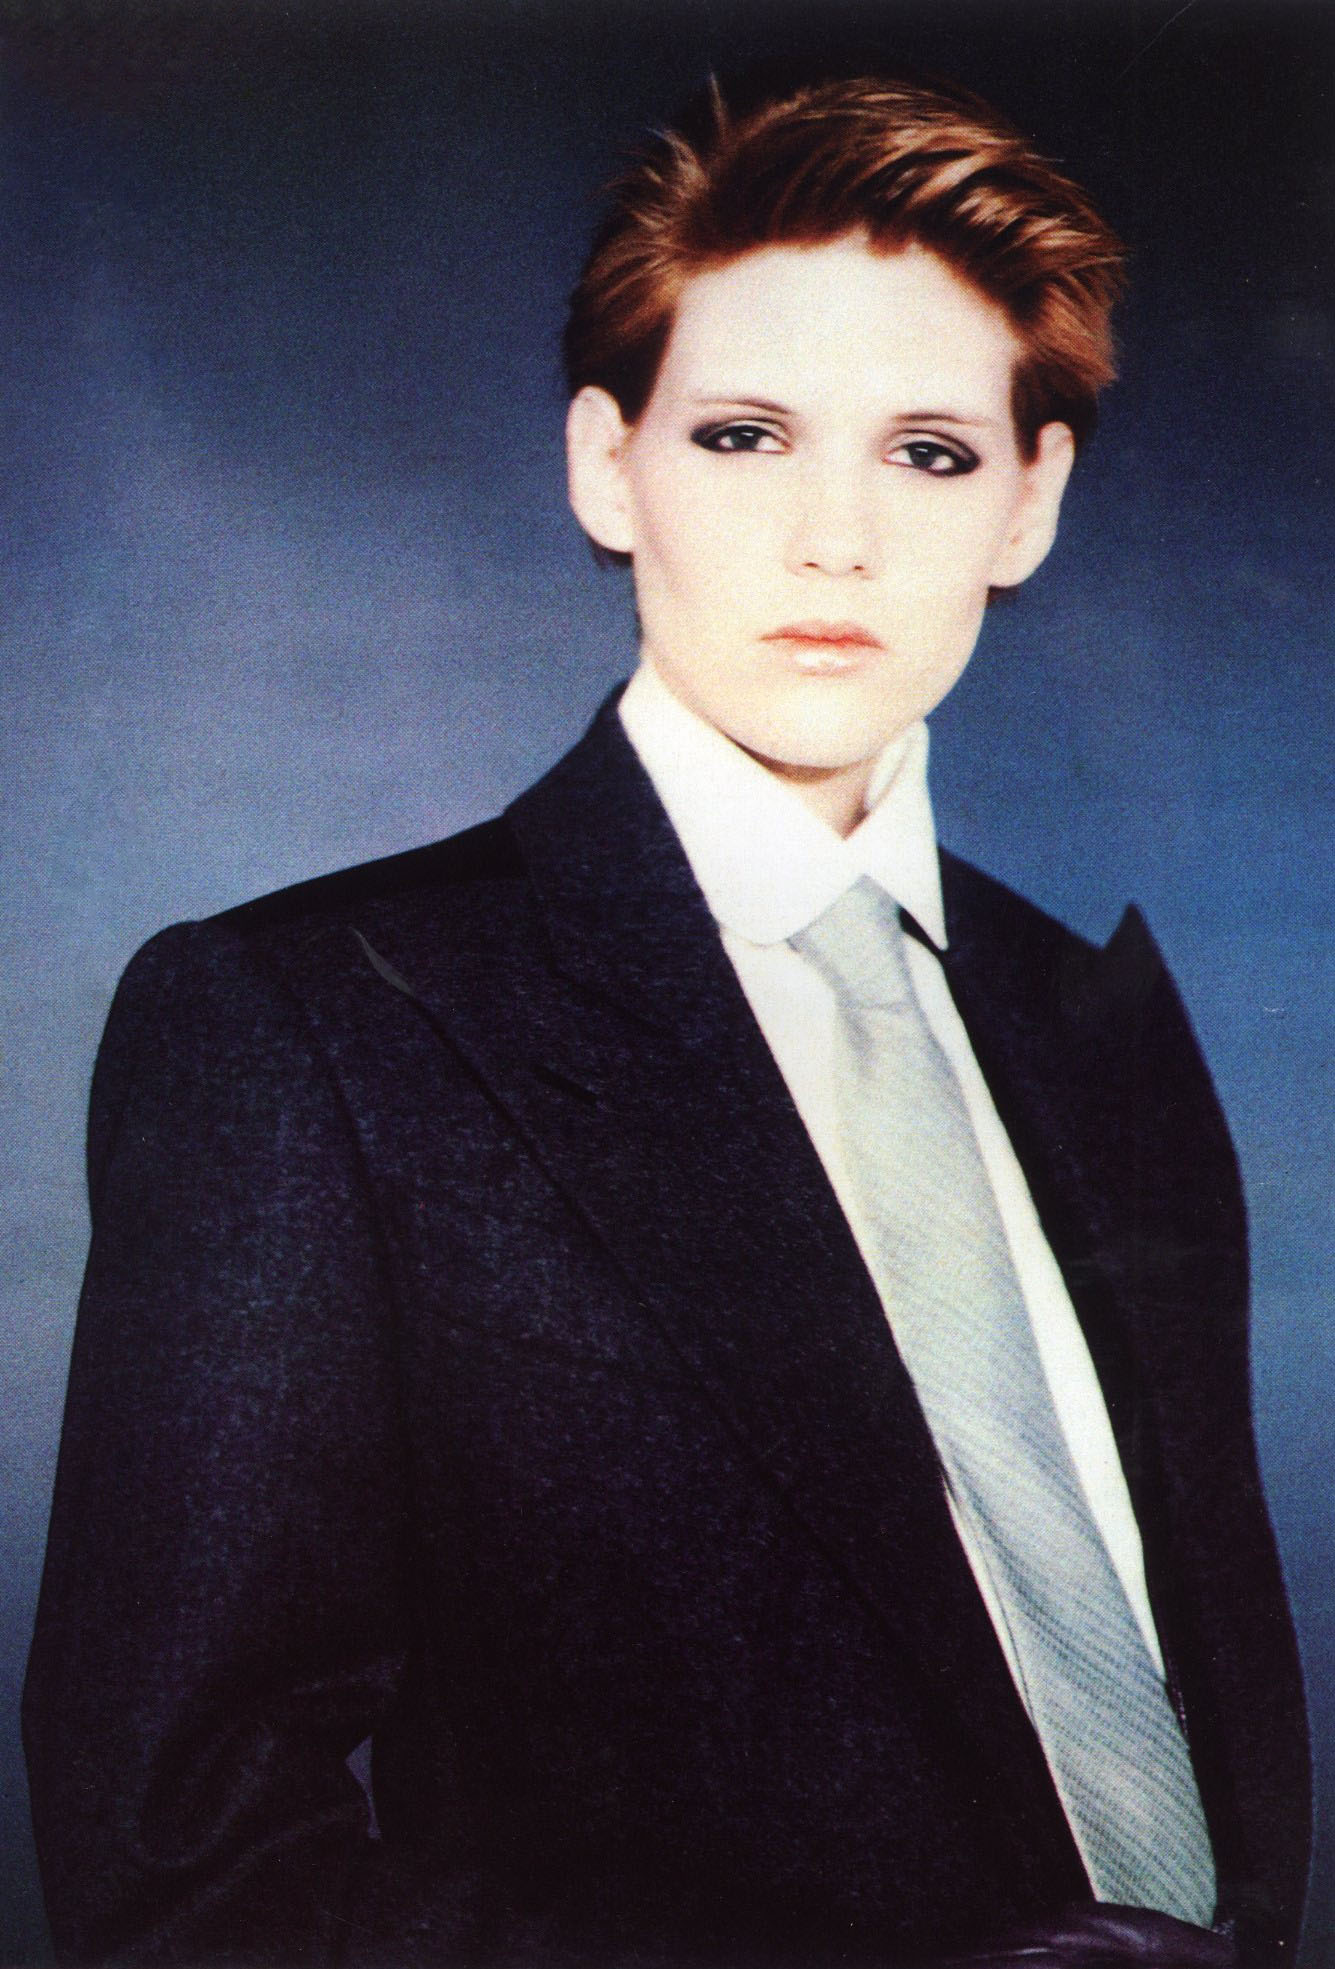 CLAUDE MONTANA | PHOTOGRAPHY PAOLO ROVERSI | MARIE CLAIRE BIS N.8 | AUTUMN/WINTER 1984